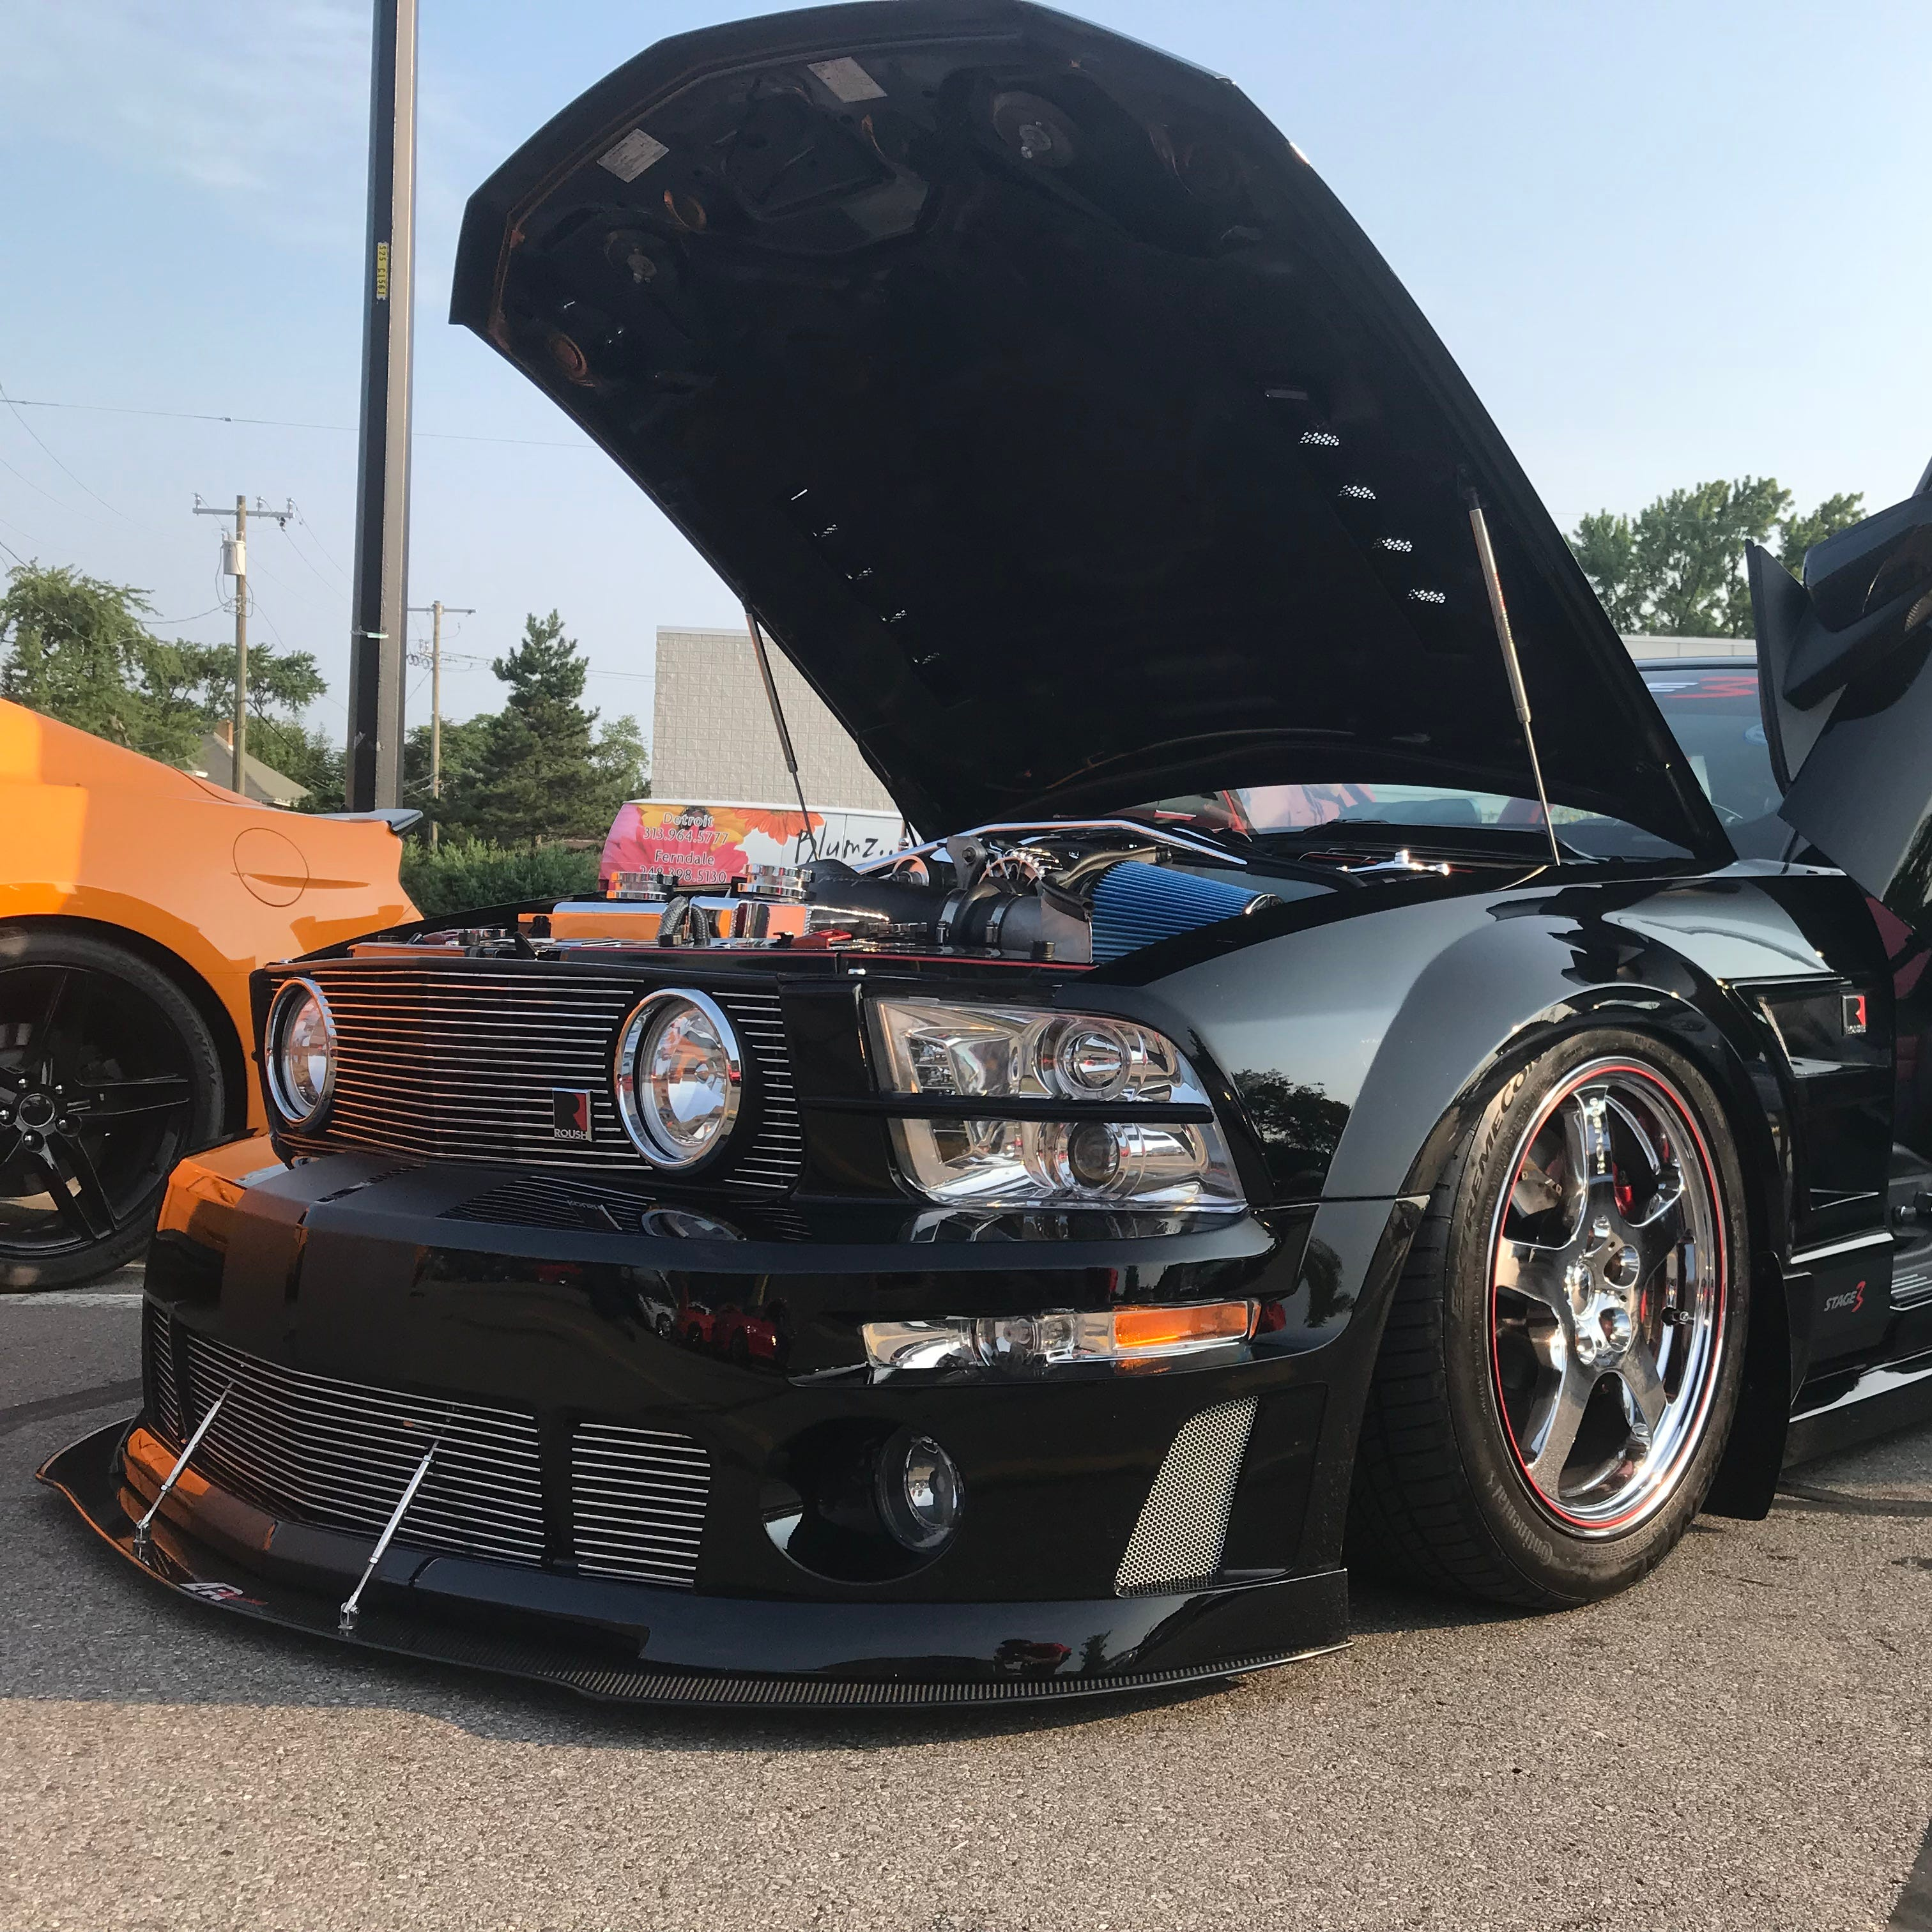 Coolest cars of the Woodward Dream Cruise